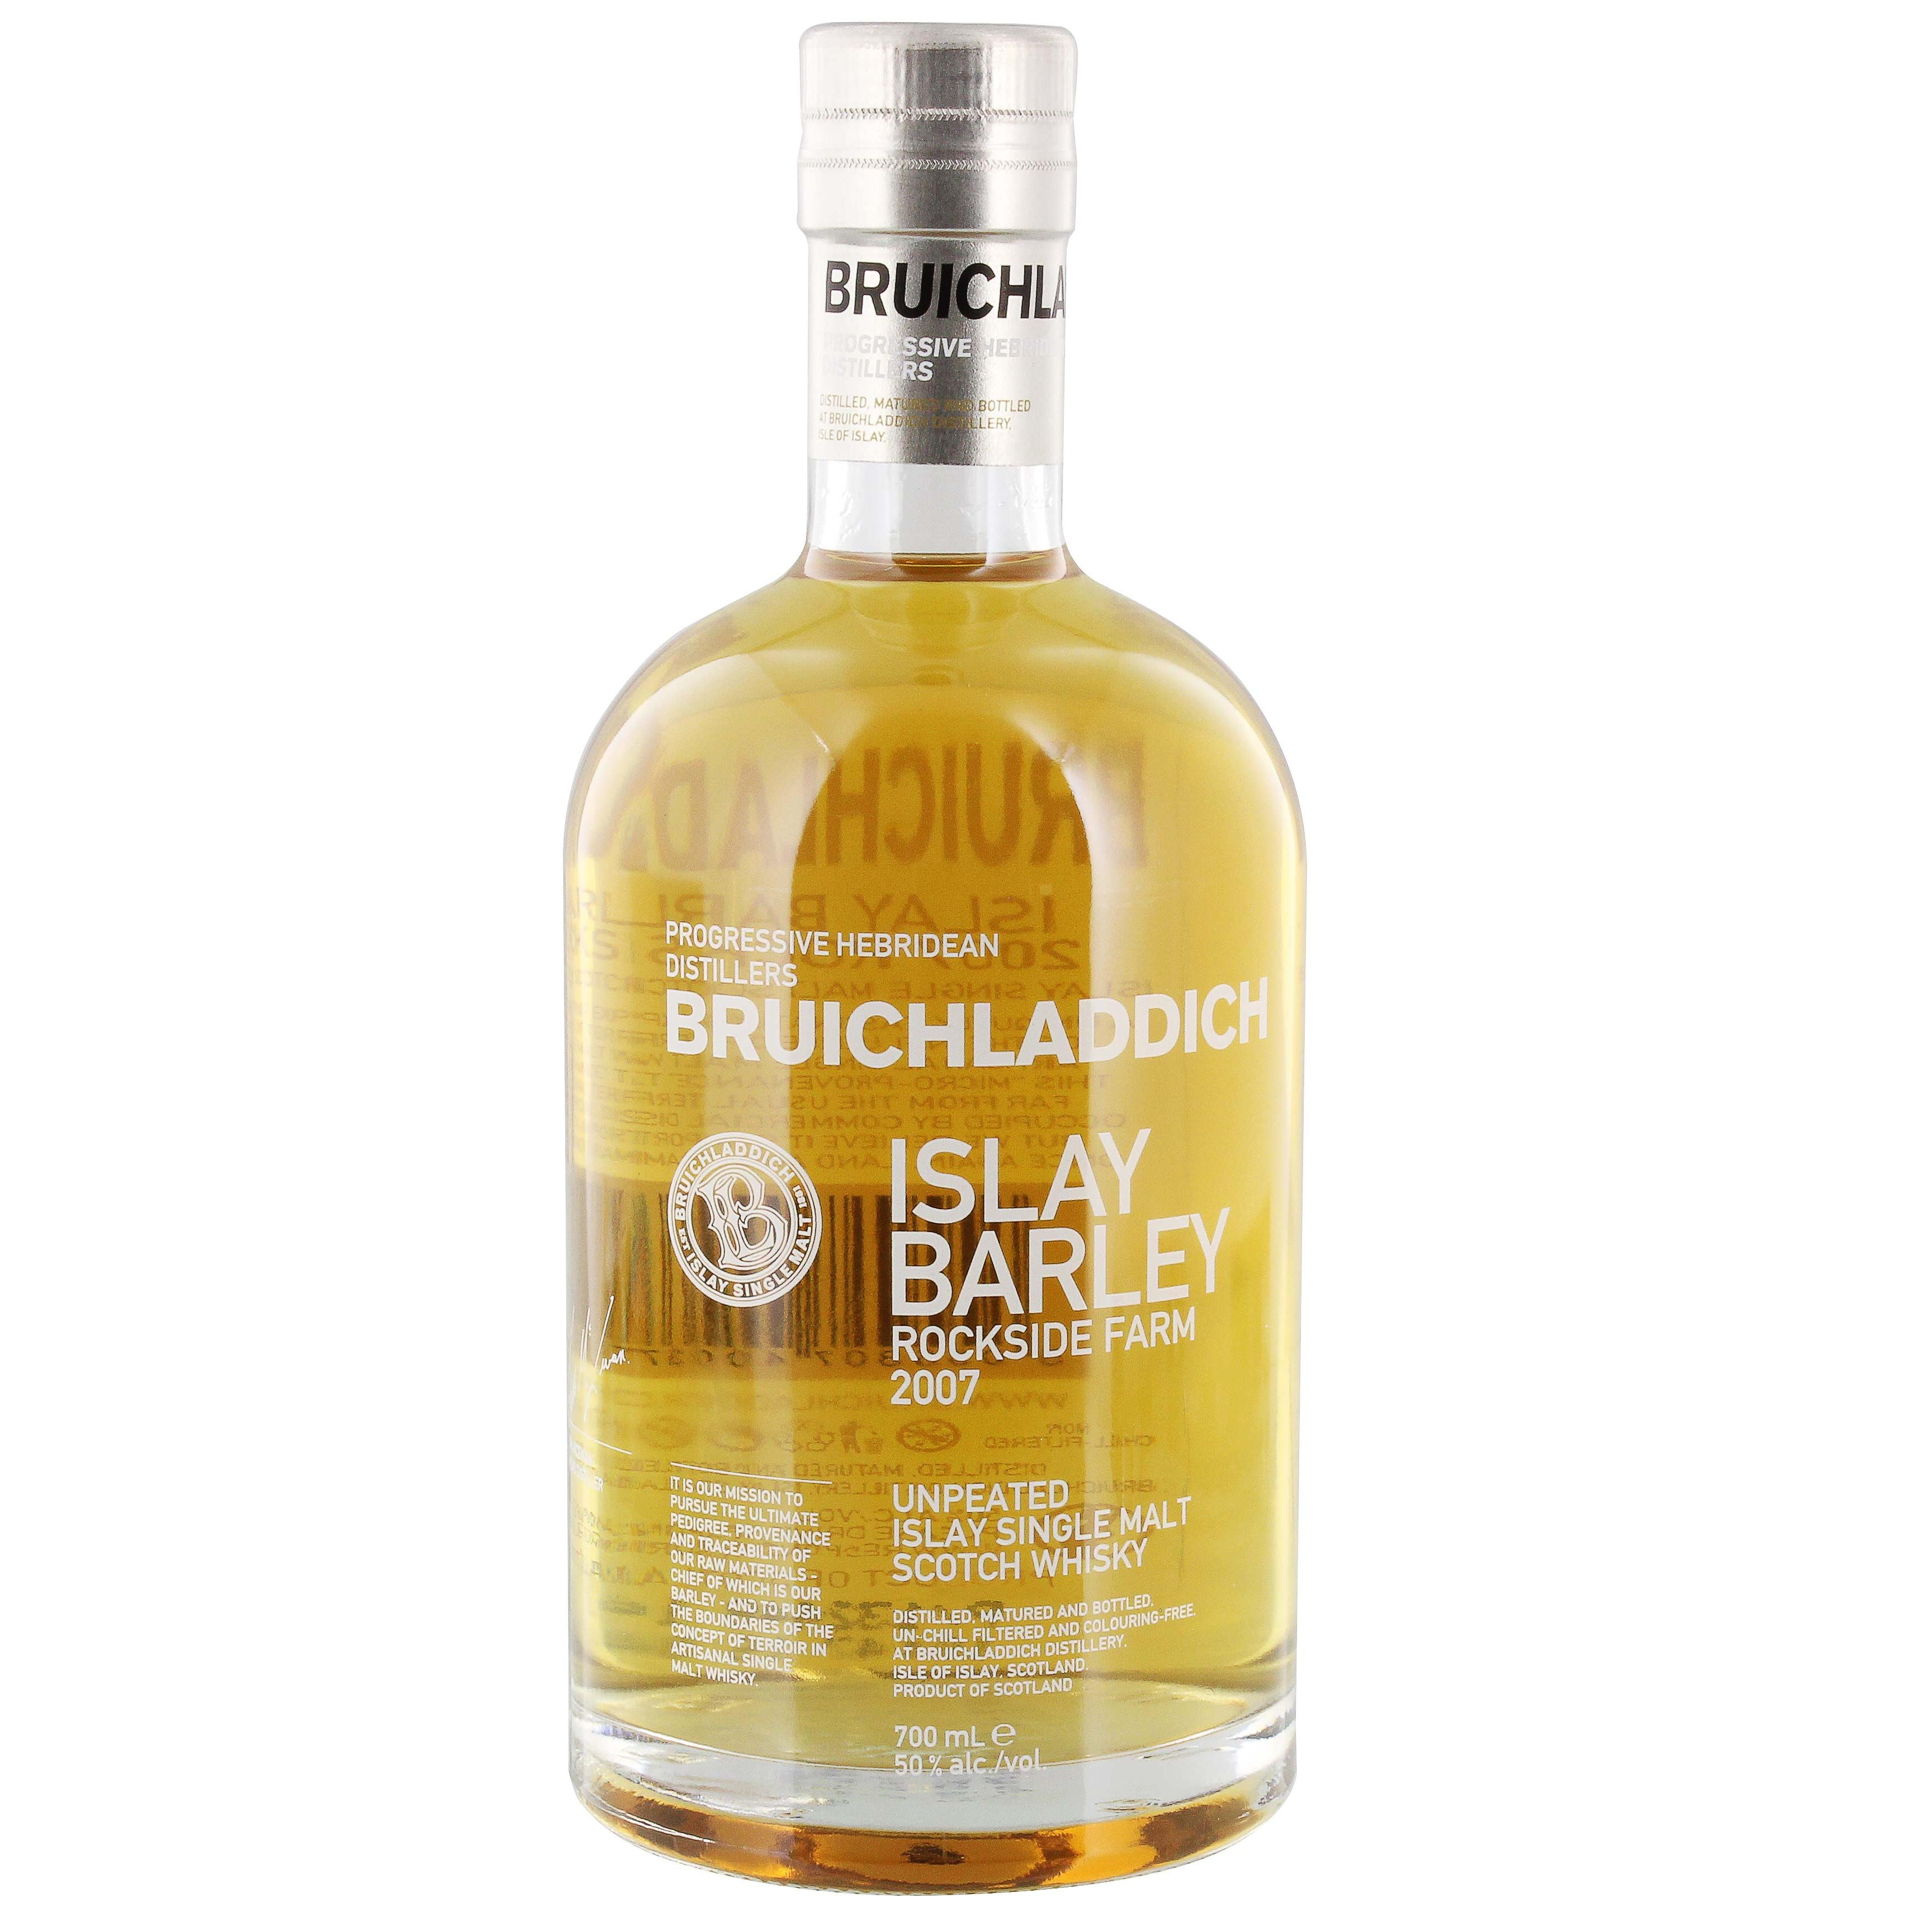 Bruichladdich Islay Barley Unpeated Single Malt Scotch Whisky 0,7l